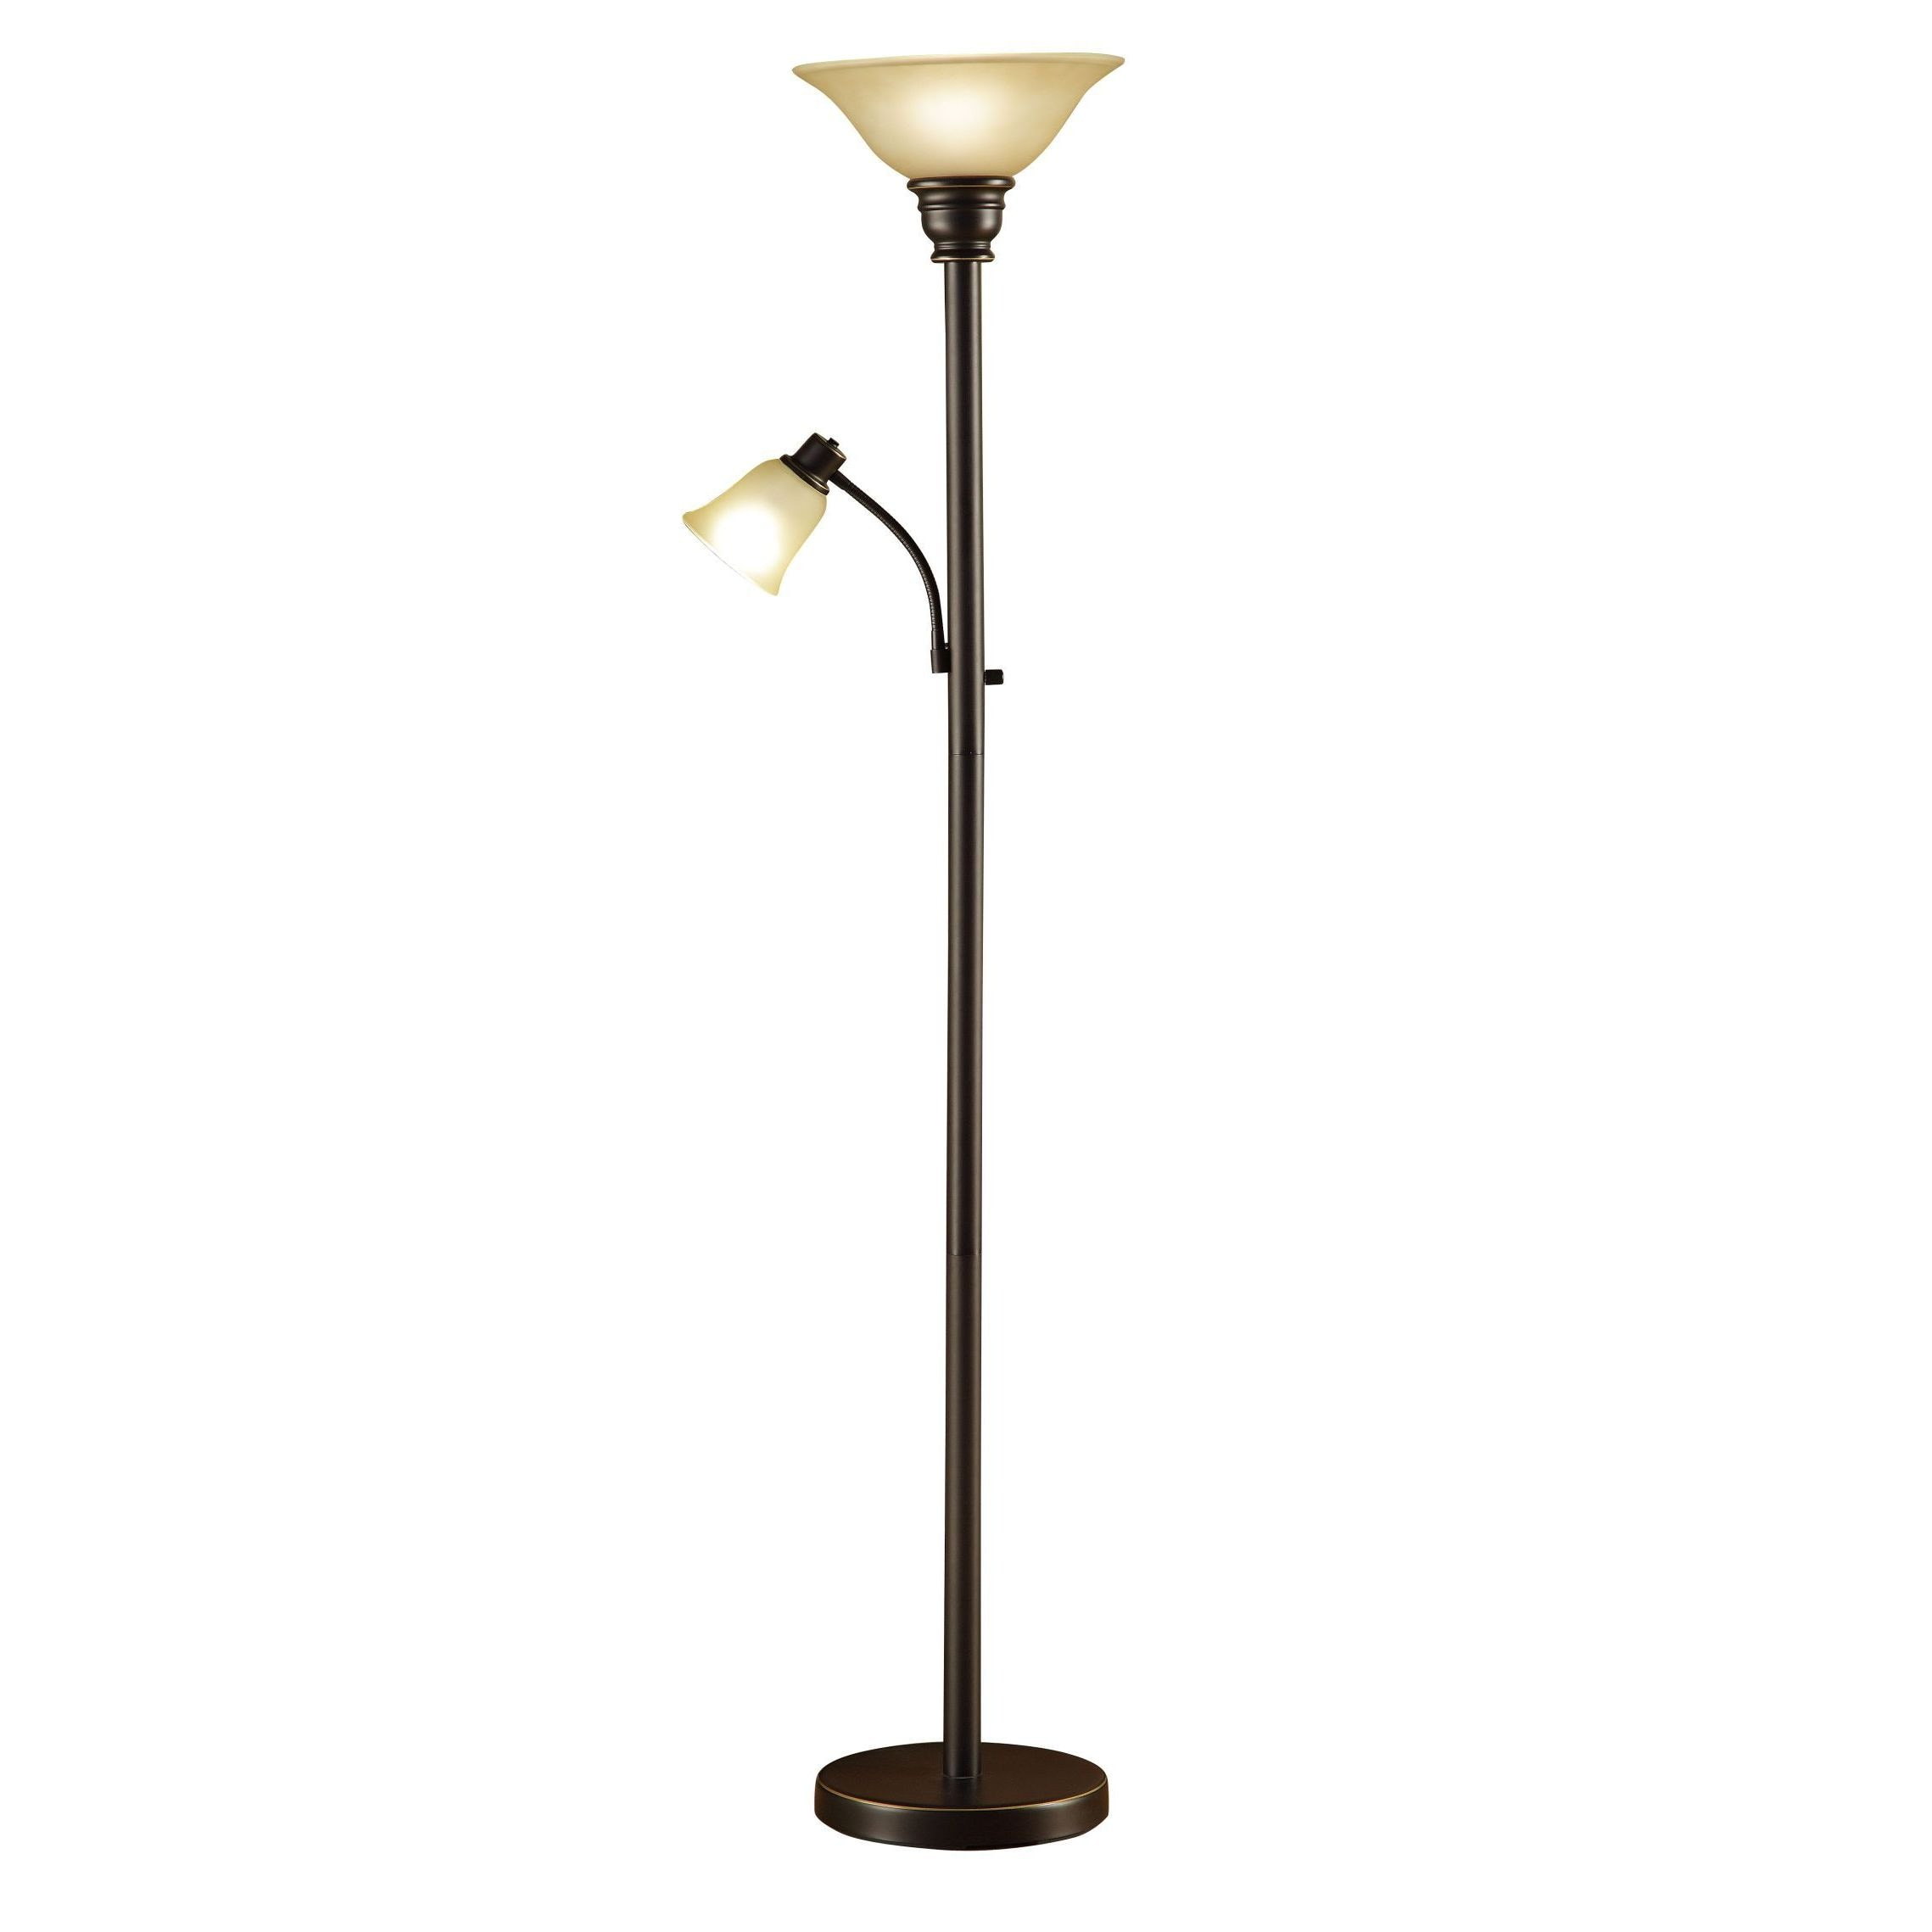 lowes for target style french sale rubbed empire slope oil lamp floors lamps with arm at bronze floor by